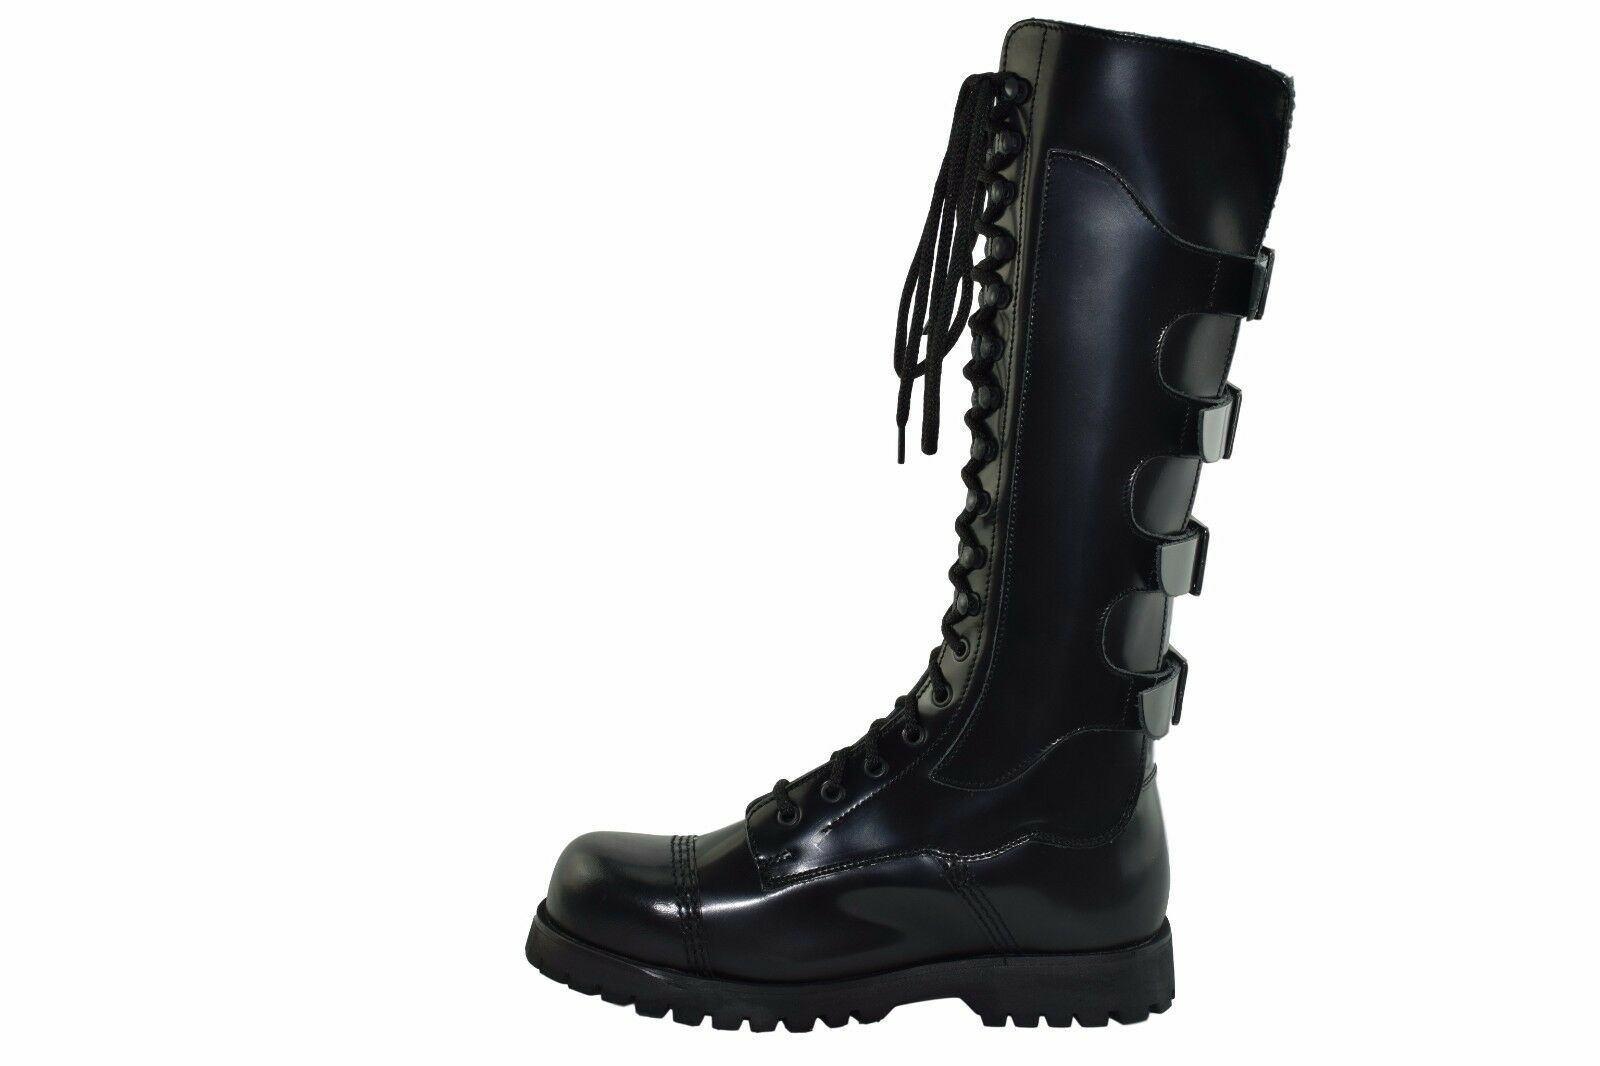 Steel Ground Black Leather Combat High Boots 4 Back Straps Buckle St112Z178 Rock